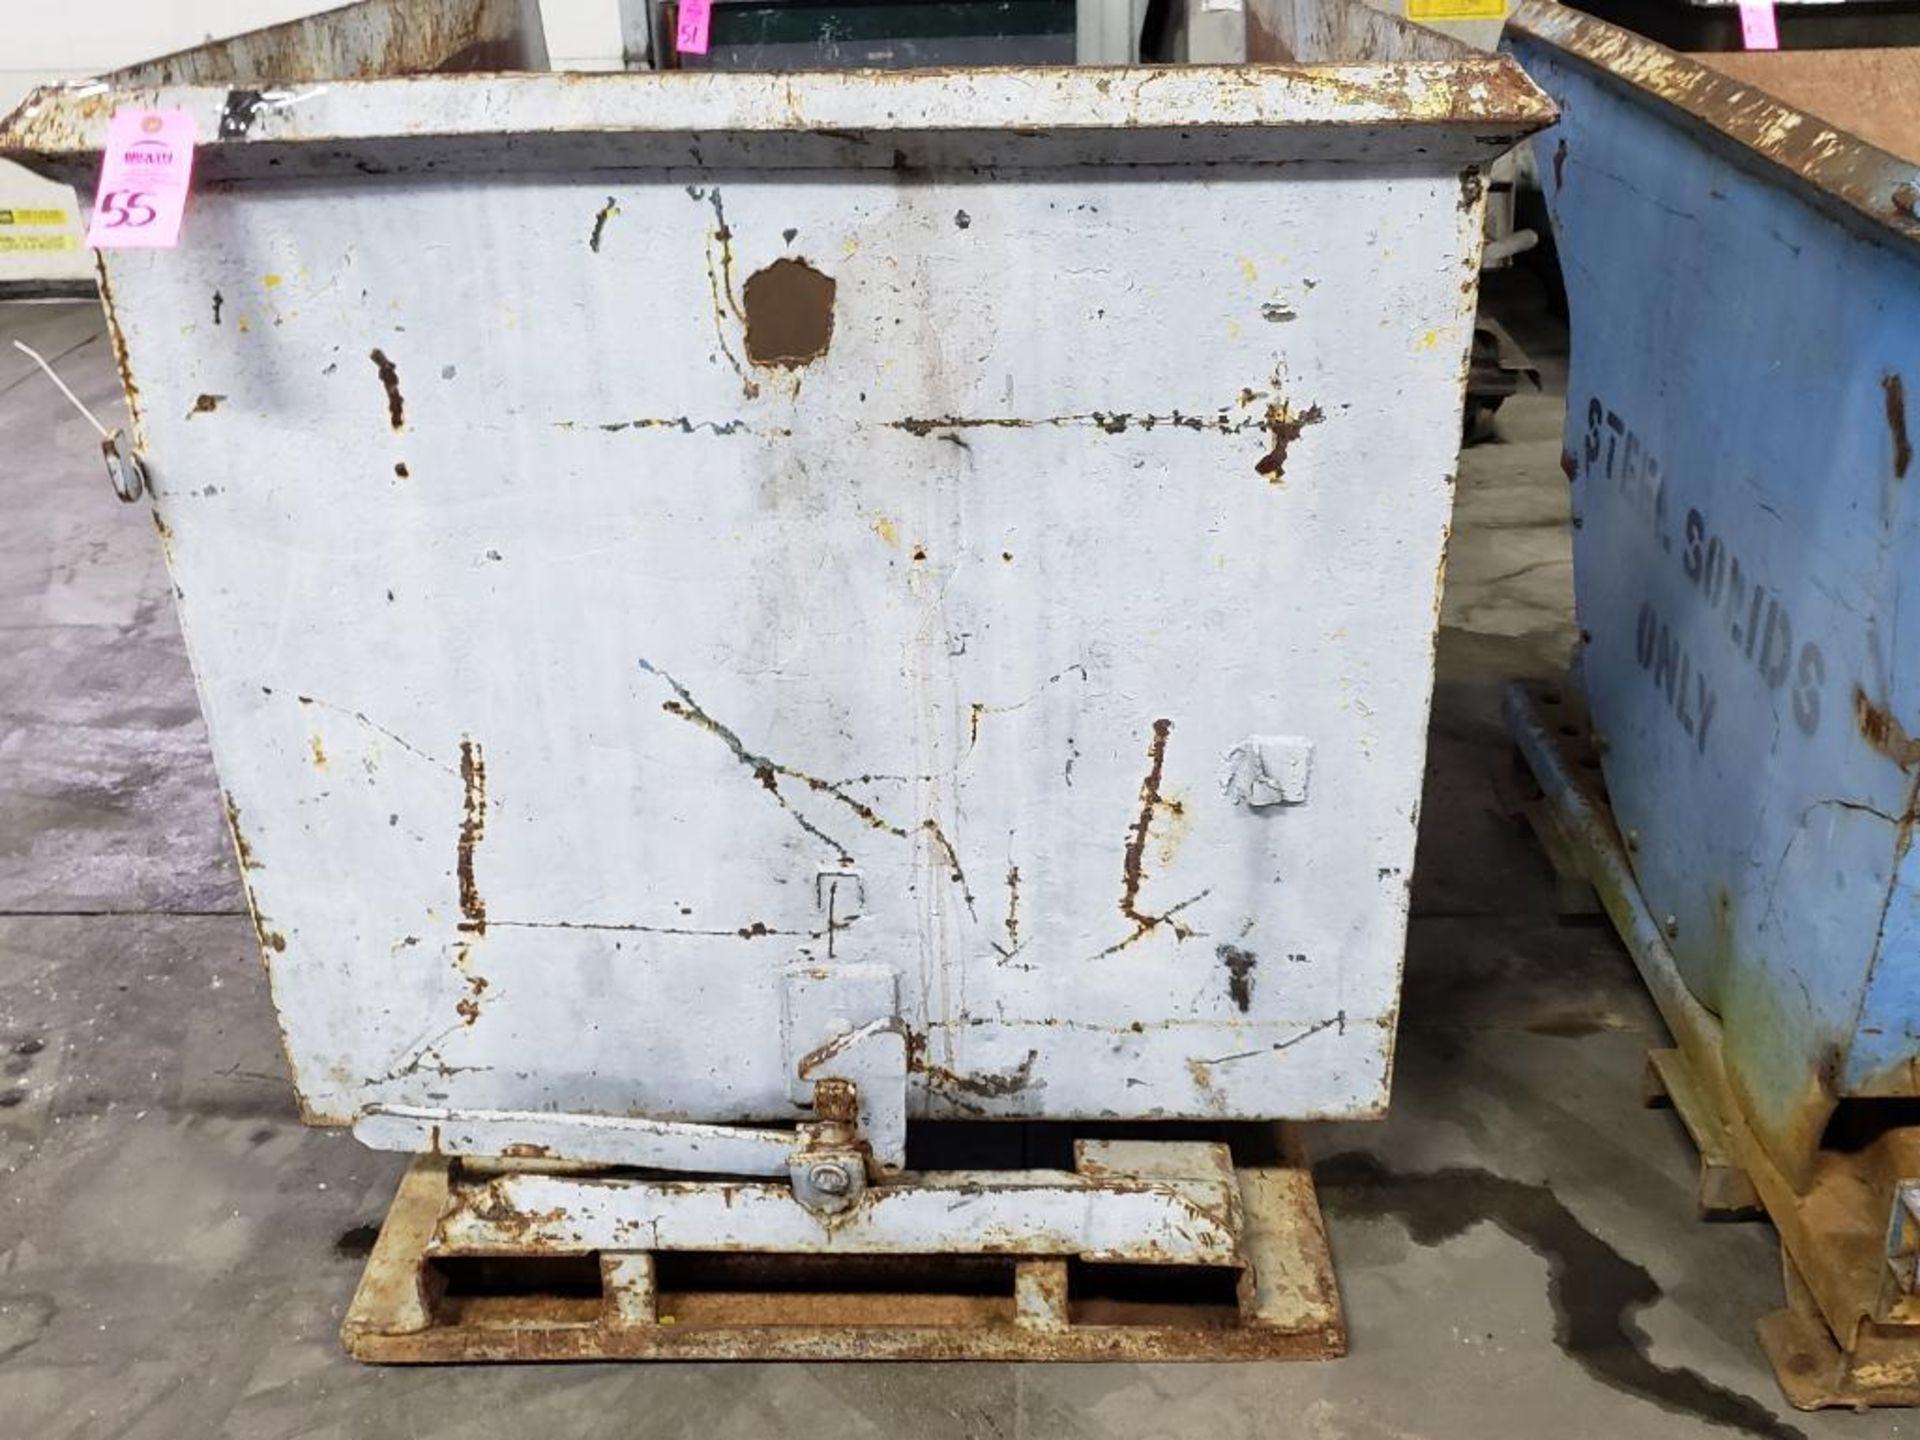 Lot 55 - Self dumping hopper.